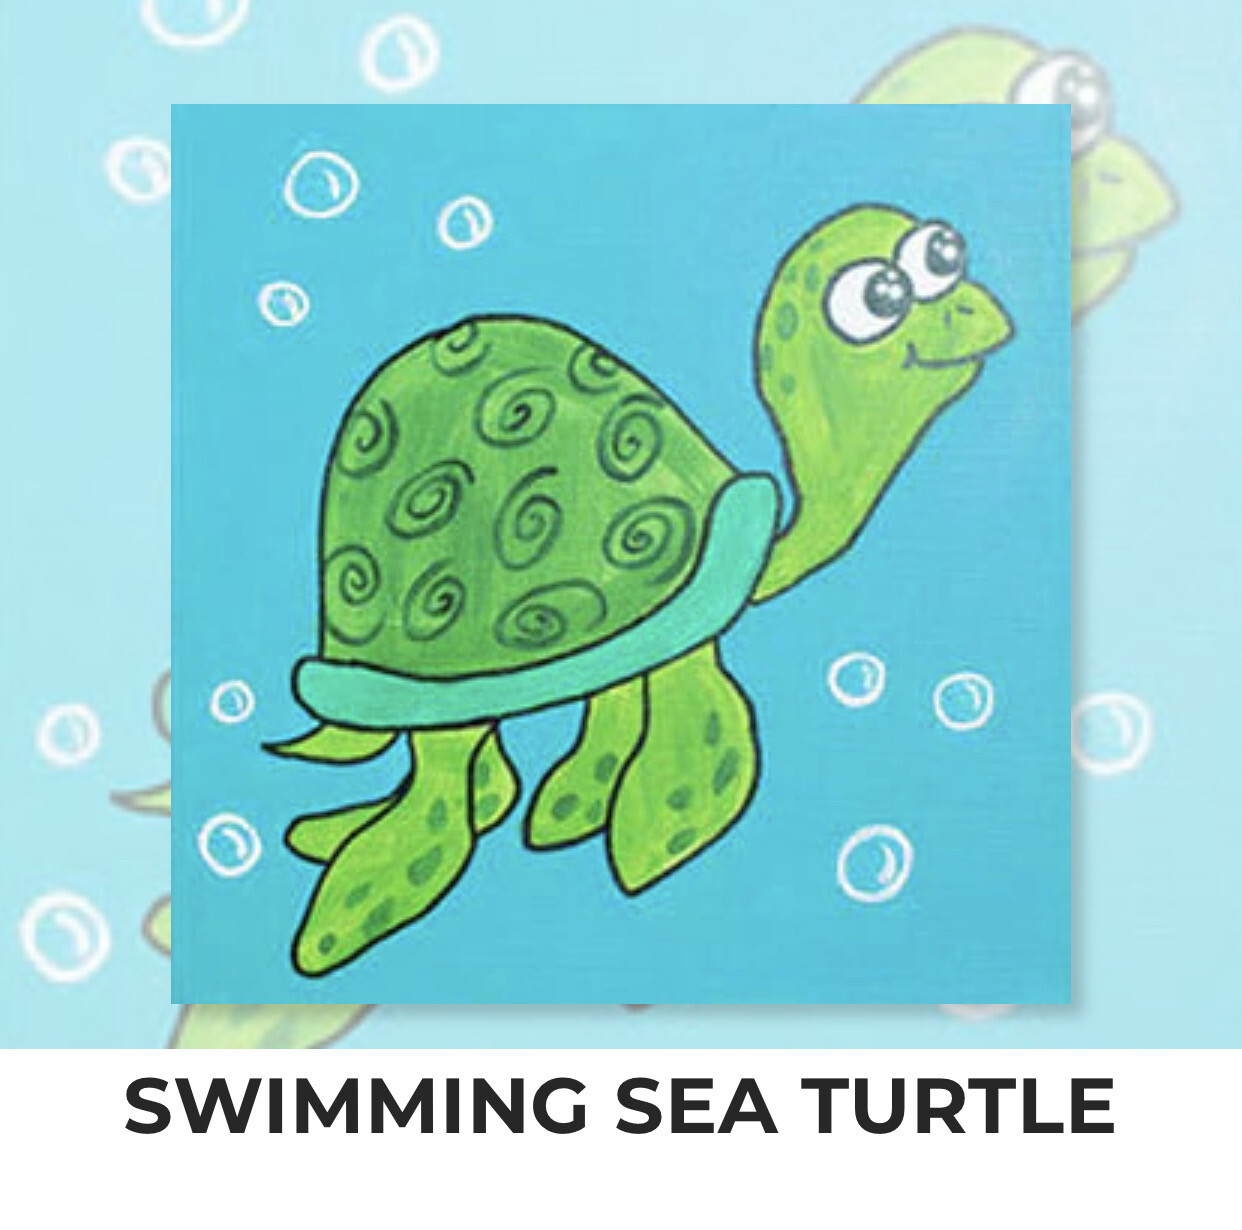 Swimming Sea Turtle KIDS Acrylic Paint On Canvas DIY Art Kit